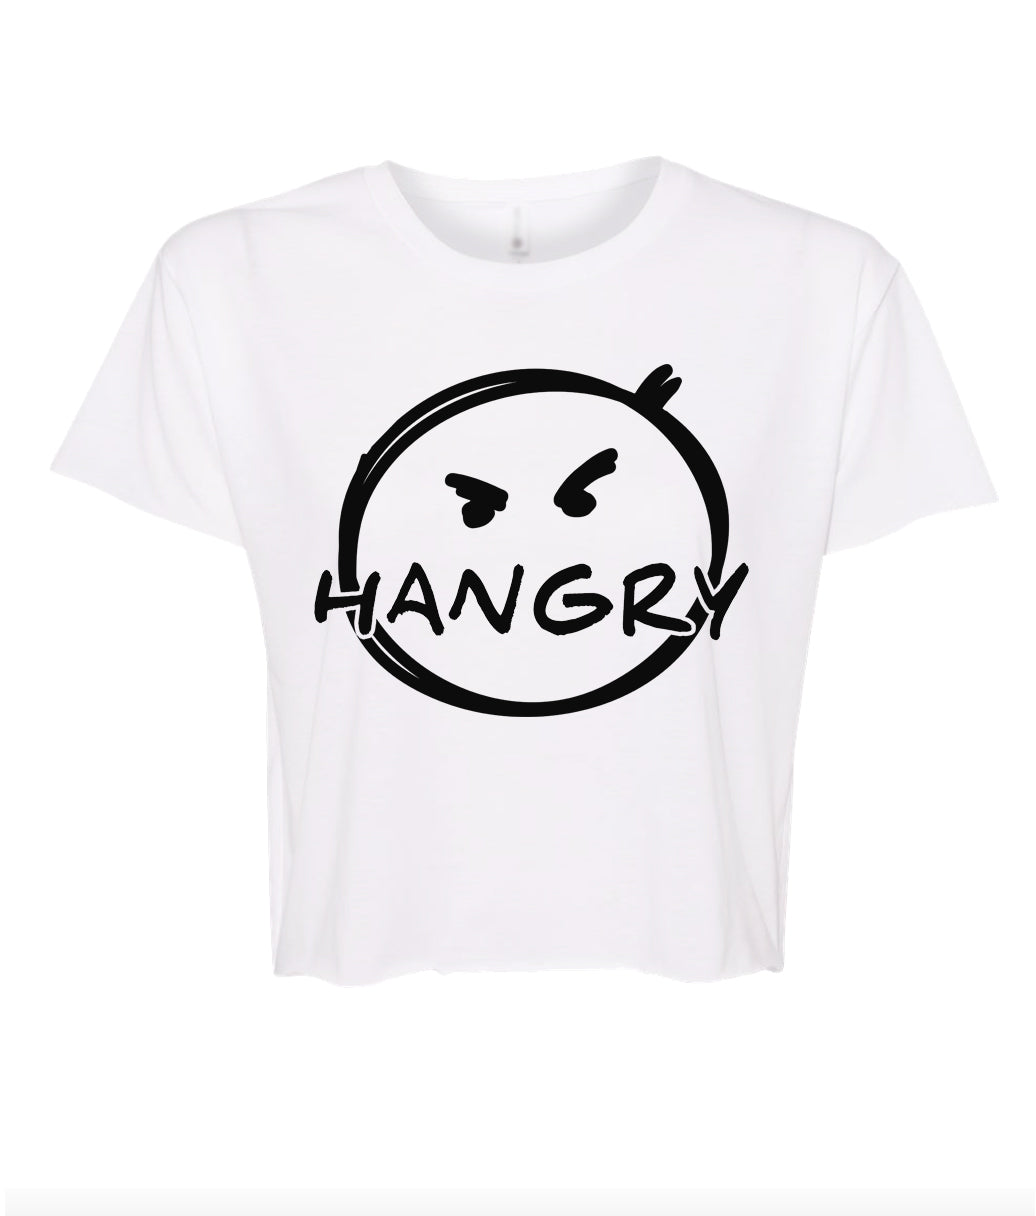 white hangry crop top t shirt